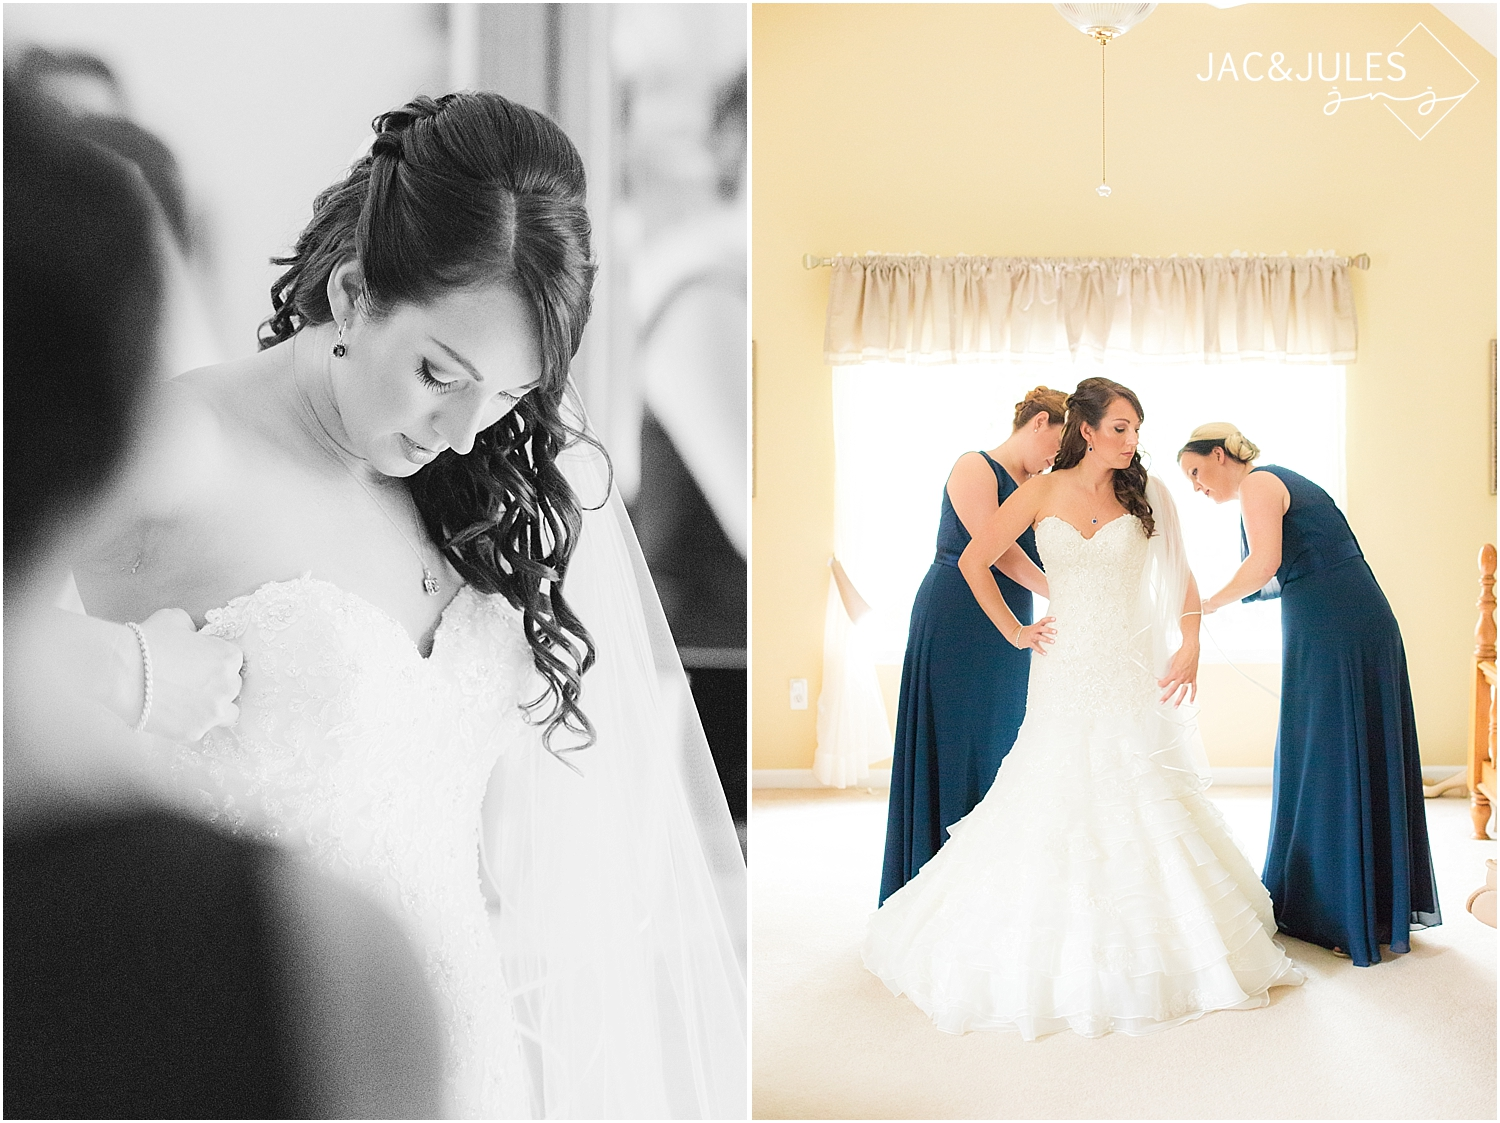 jacnjules photograph a bride getting ready for her wedding in Manahawkin, NJ